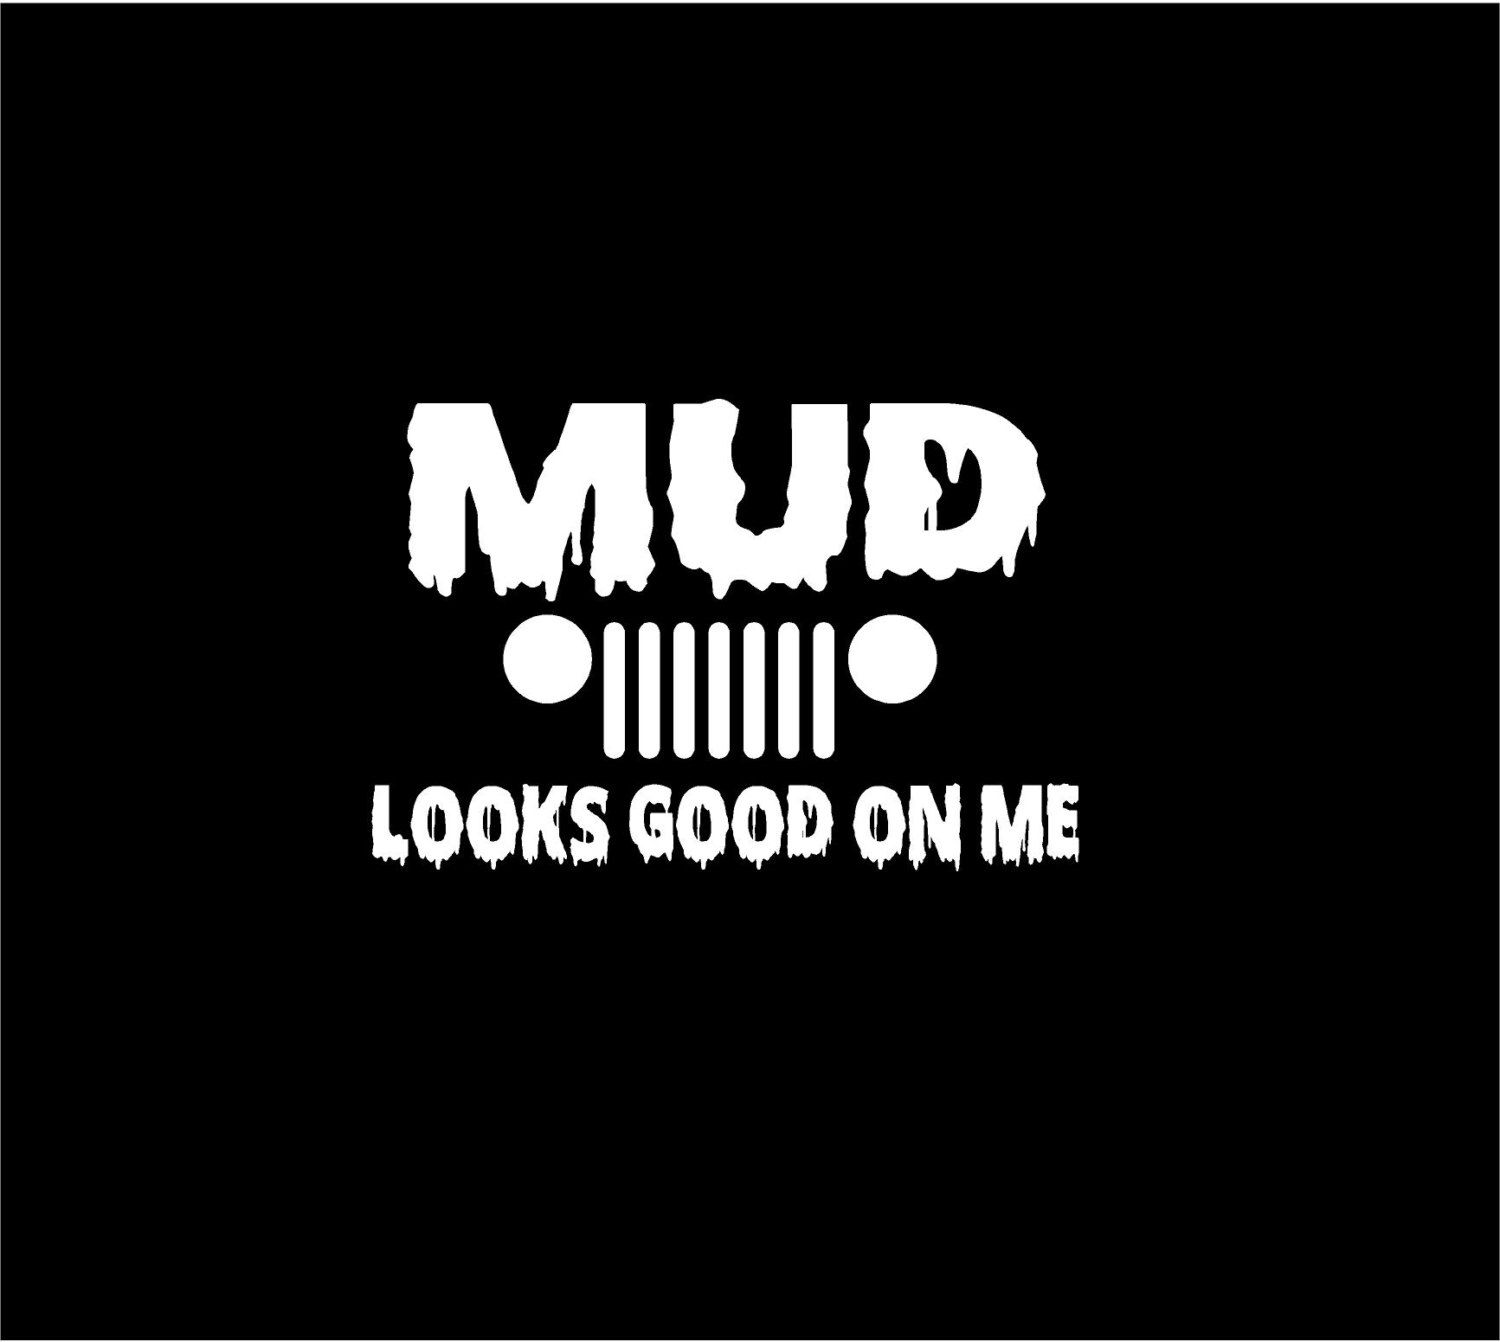 Jeep mud looks good on me decal vinyl car truck auto vehicle